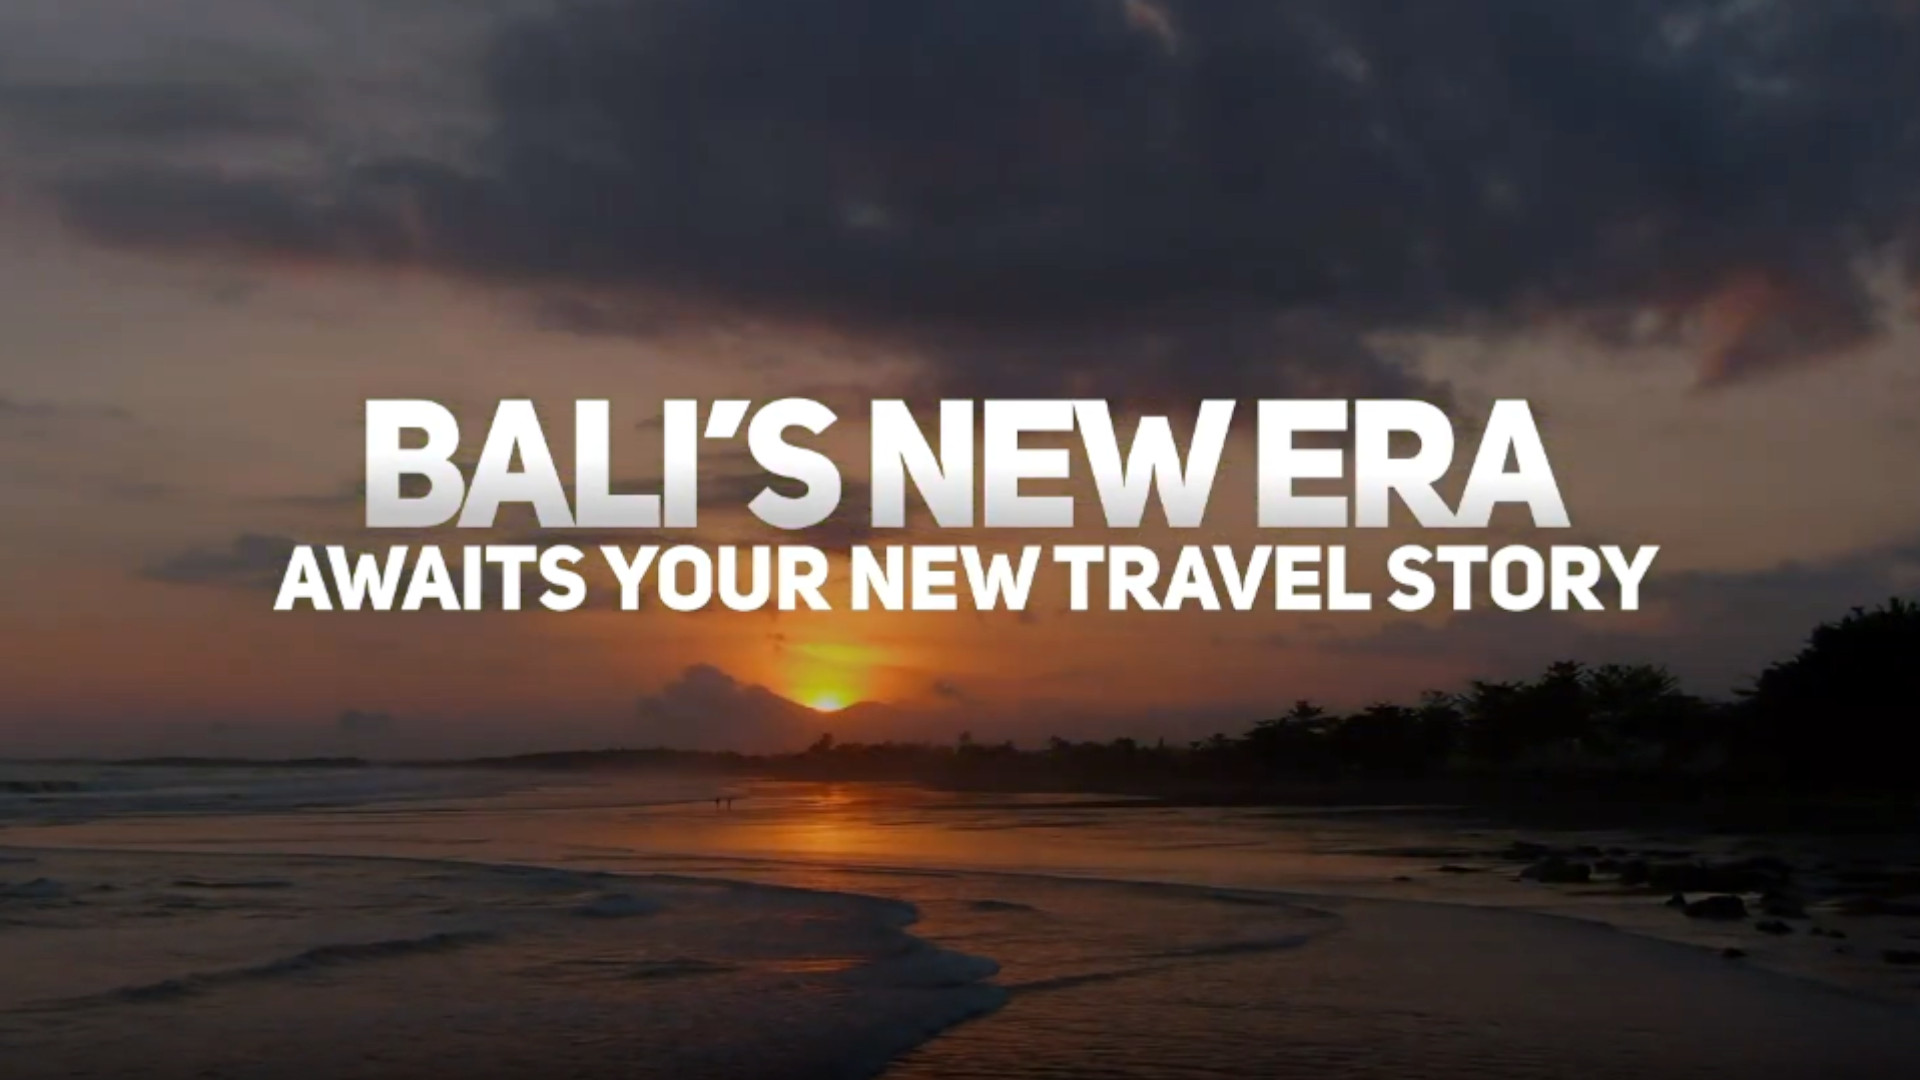 Bali Awaits Your New Travel Story